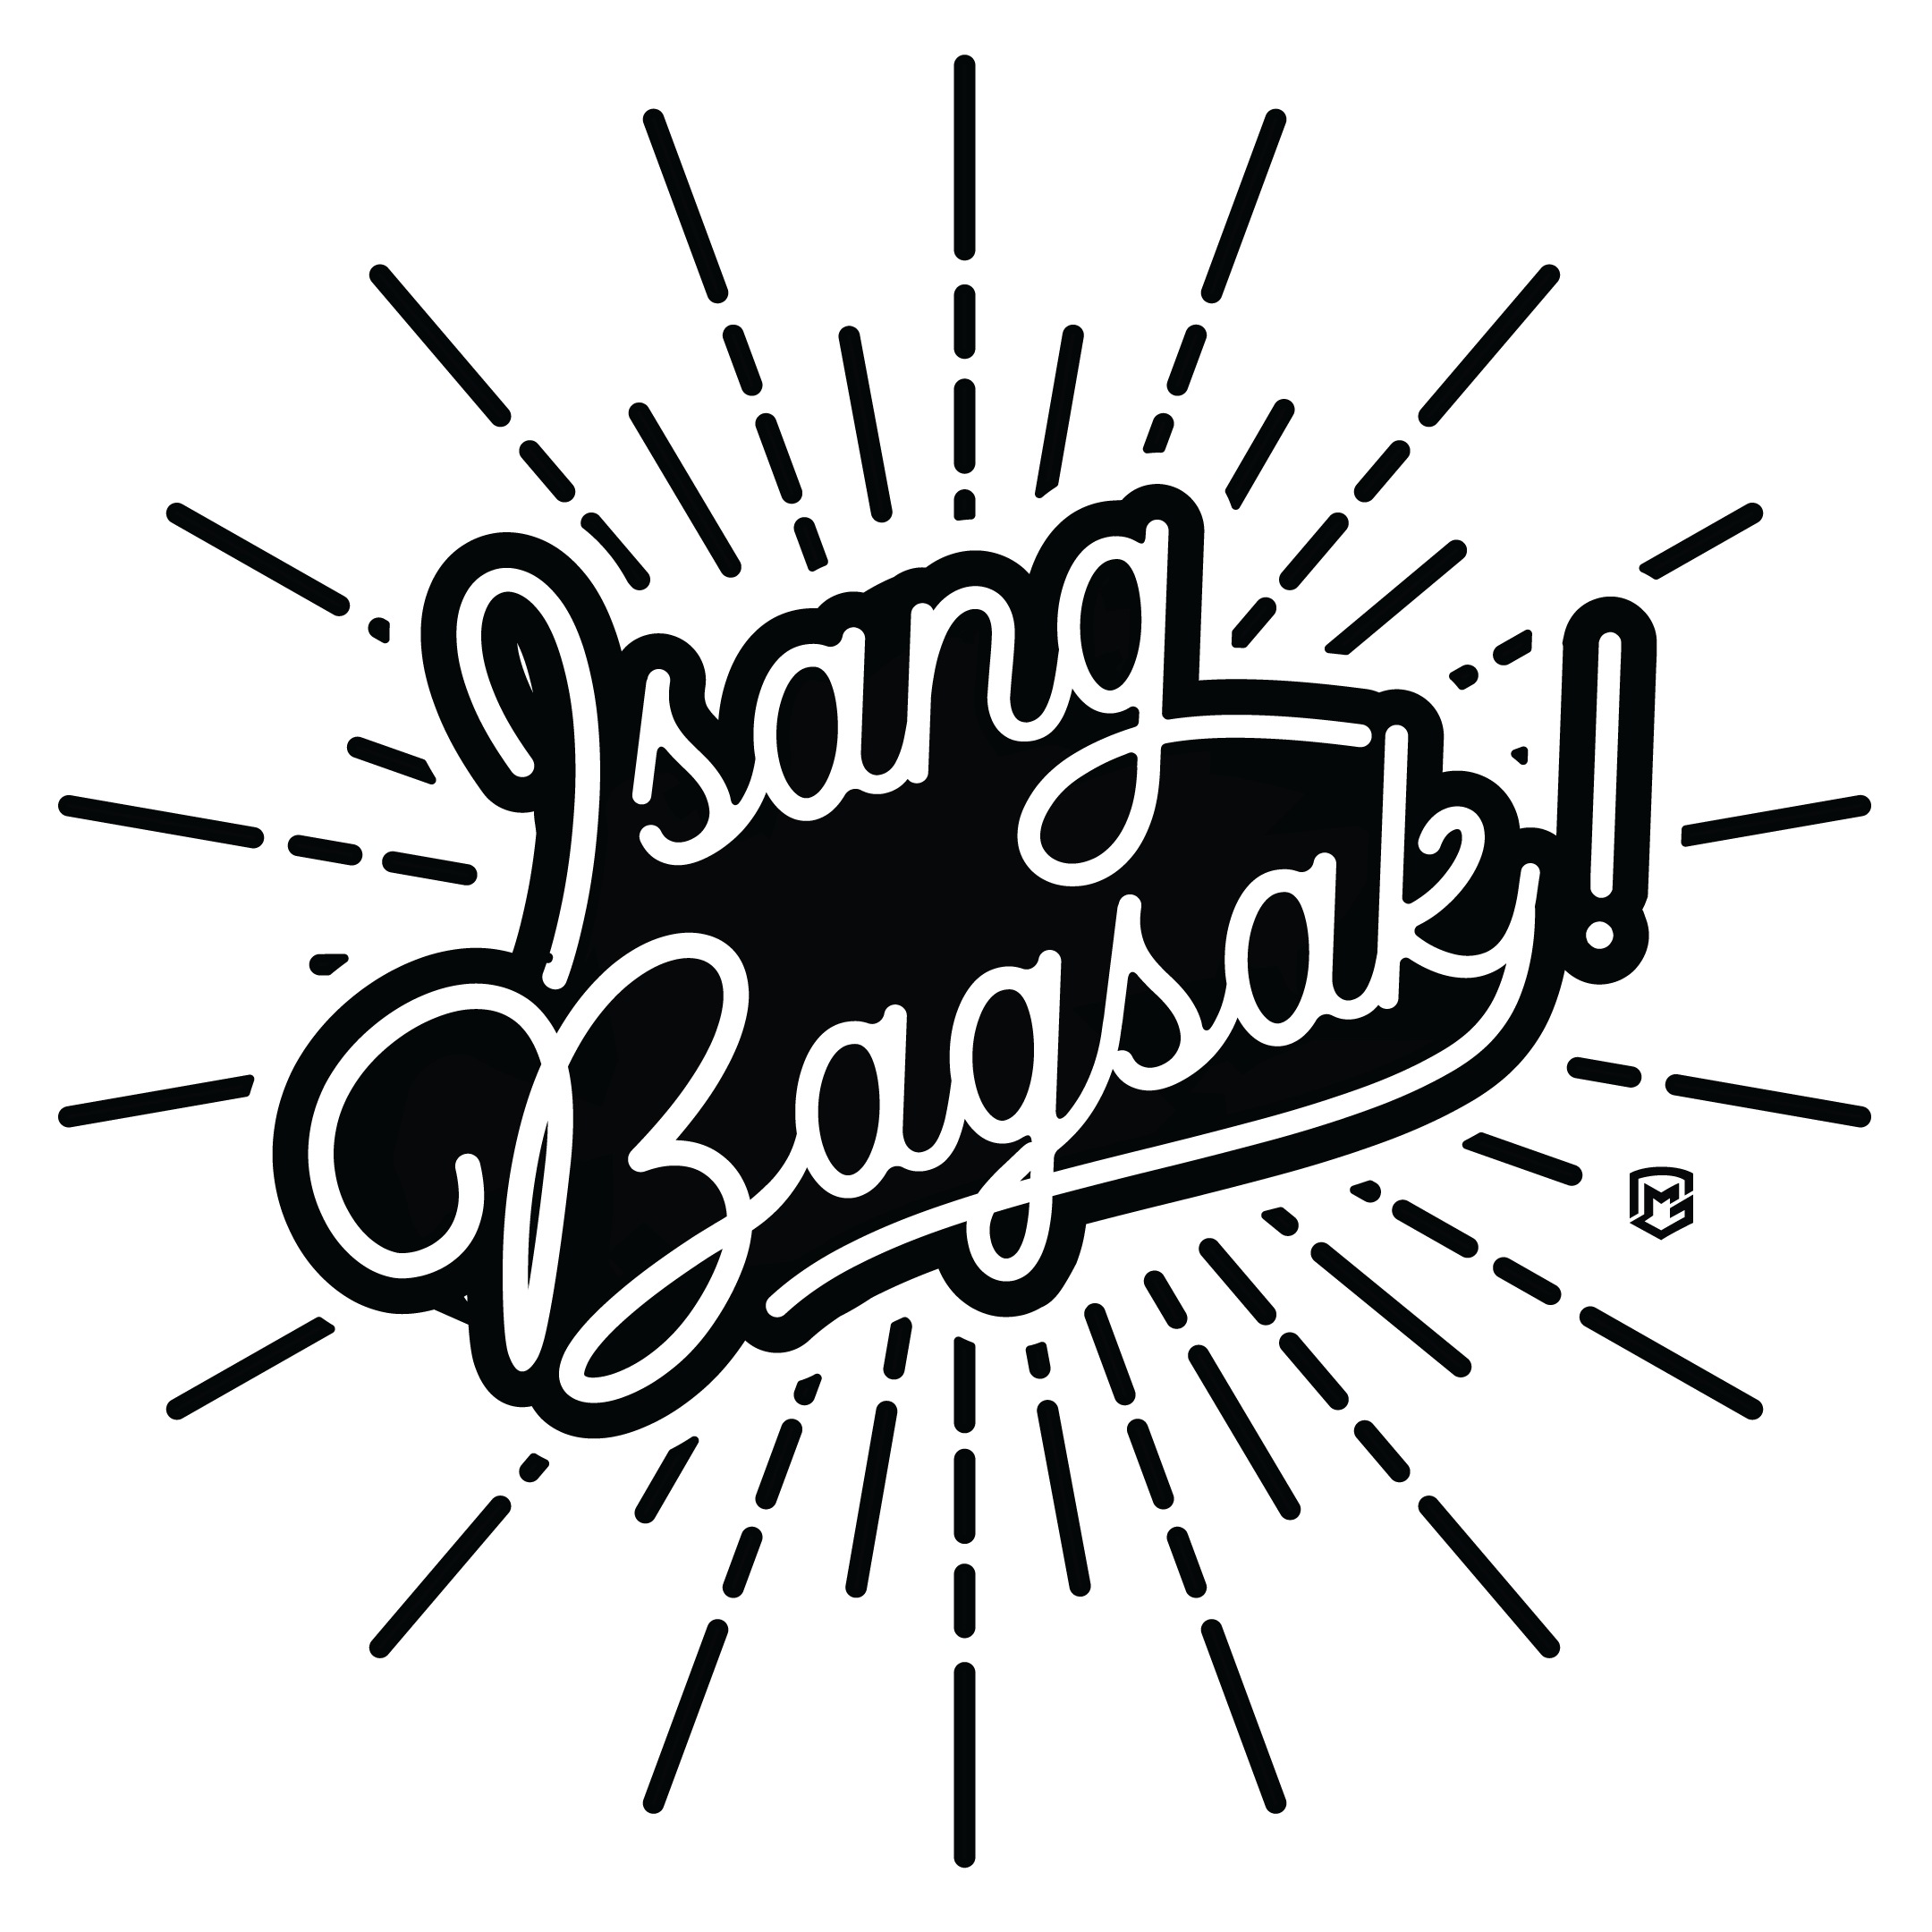 - My first birthday passion project is up and running until the 28th of June! I put my Isang Bagsak! design on clothing as my first clothing fundraiser because I wanted to spend my 22nd birthday fundraising for the upkeep of the Paolo Agbayani Retirement Village in Delano, California. It is the village where the Delano Manongs, the trailblazers for the Delano Grape Strikes, retired to once the strikes have settled. It's a crucial piece of Pilipinx-American history and it's our duty to help keep it running.Support the fundraiser by giving back by purchasing a shirt, hoodie, crewneck, or long-sleeve tee today at bonfire.com/isangbagsak